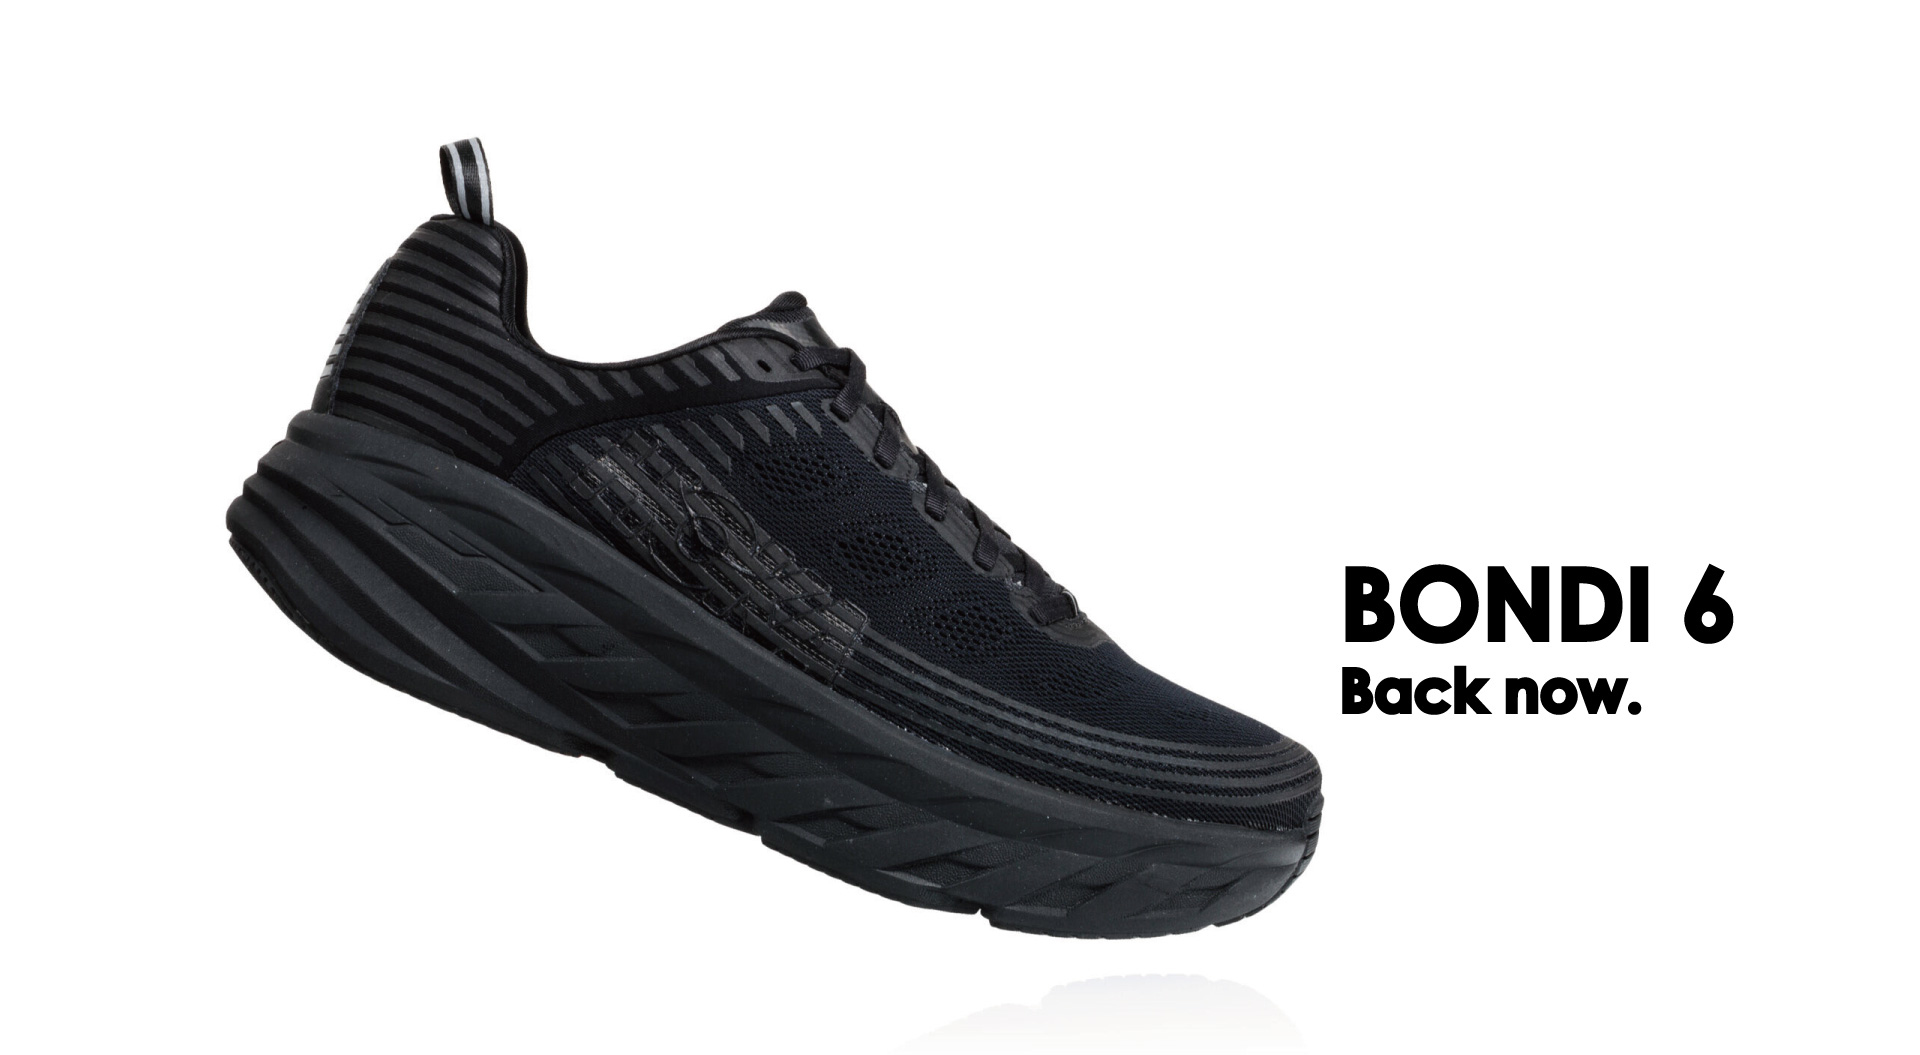 hoka one one,bondi 6,maximum cushion shoes,厚底運動鞋,跑步鞋